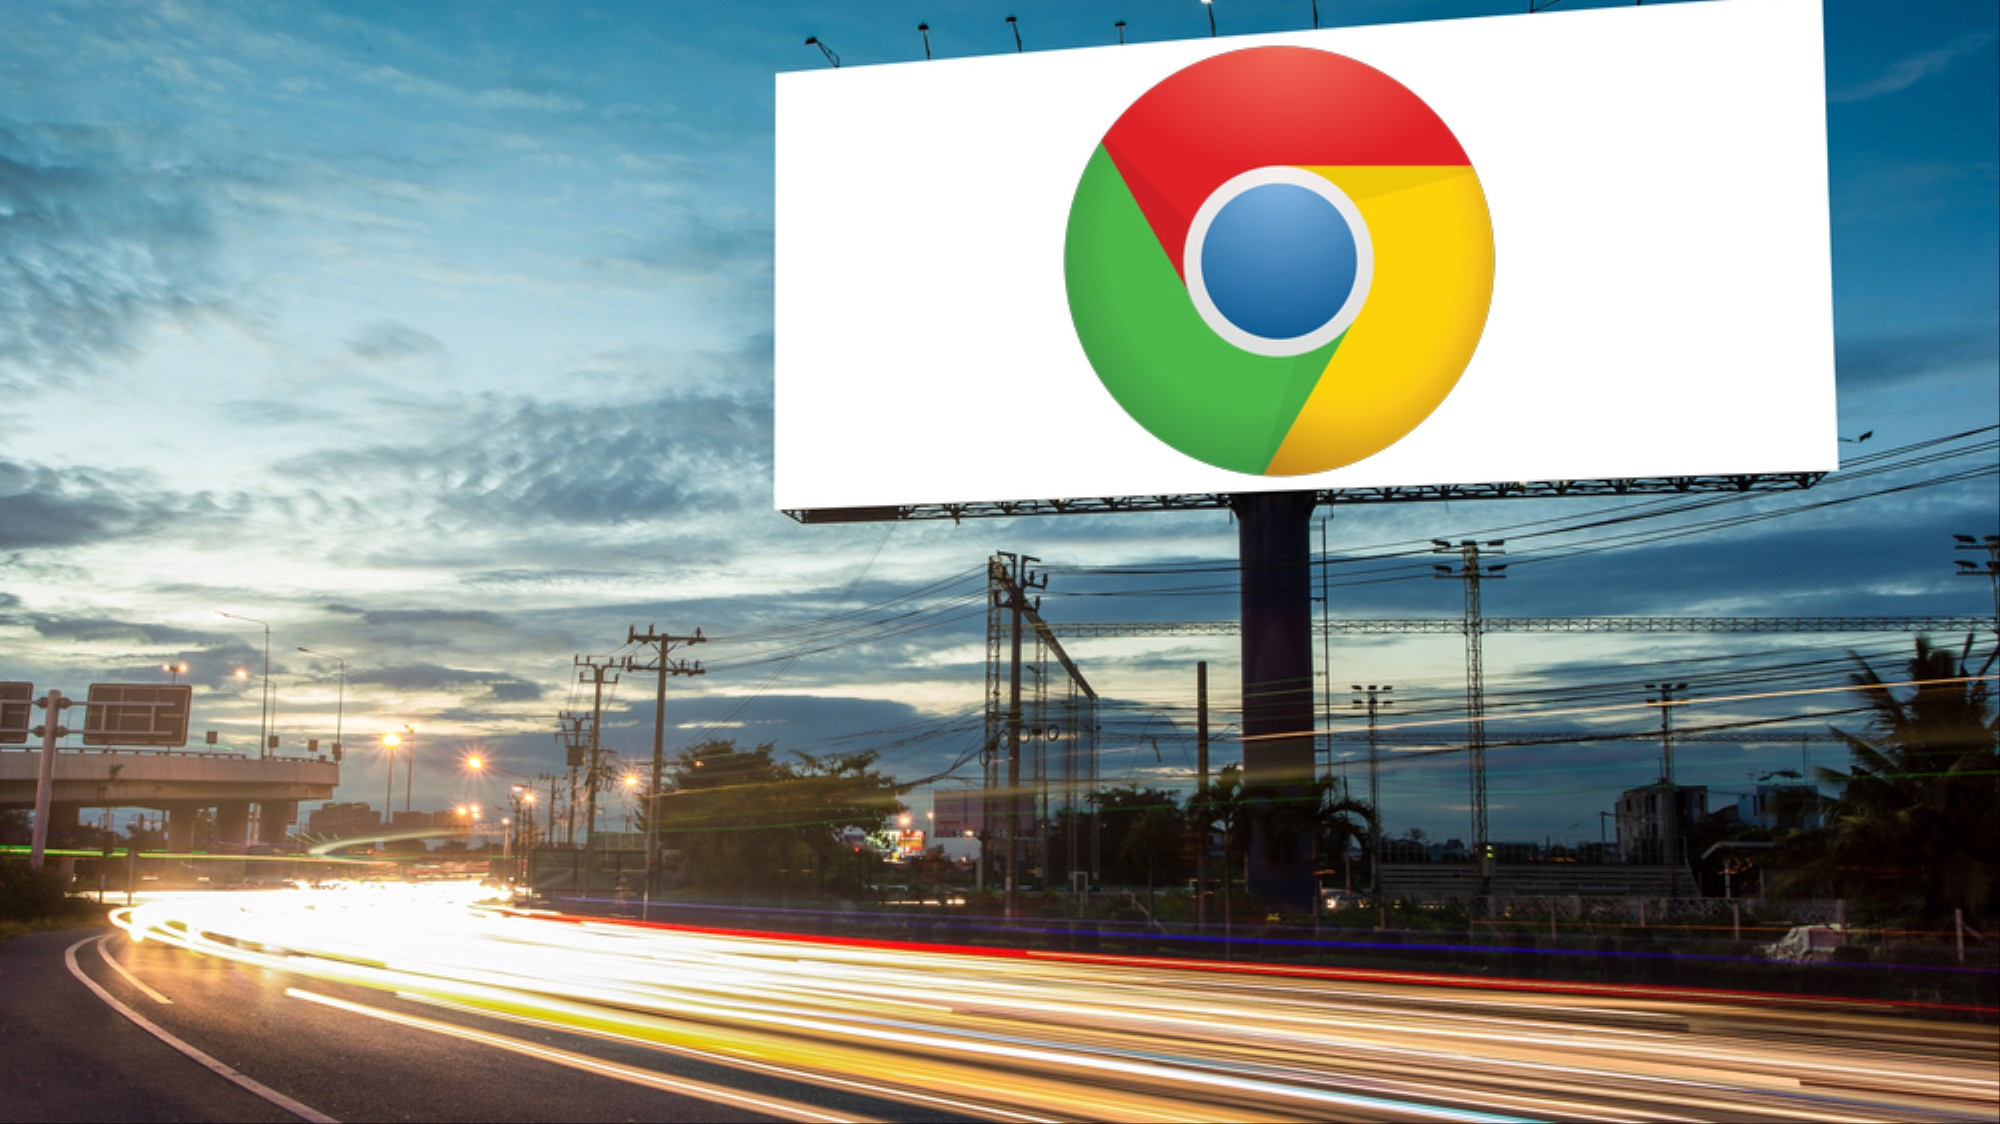 Upcoming Version of Google Chrome Will Make It Harder to